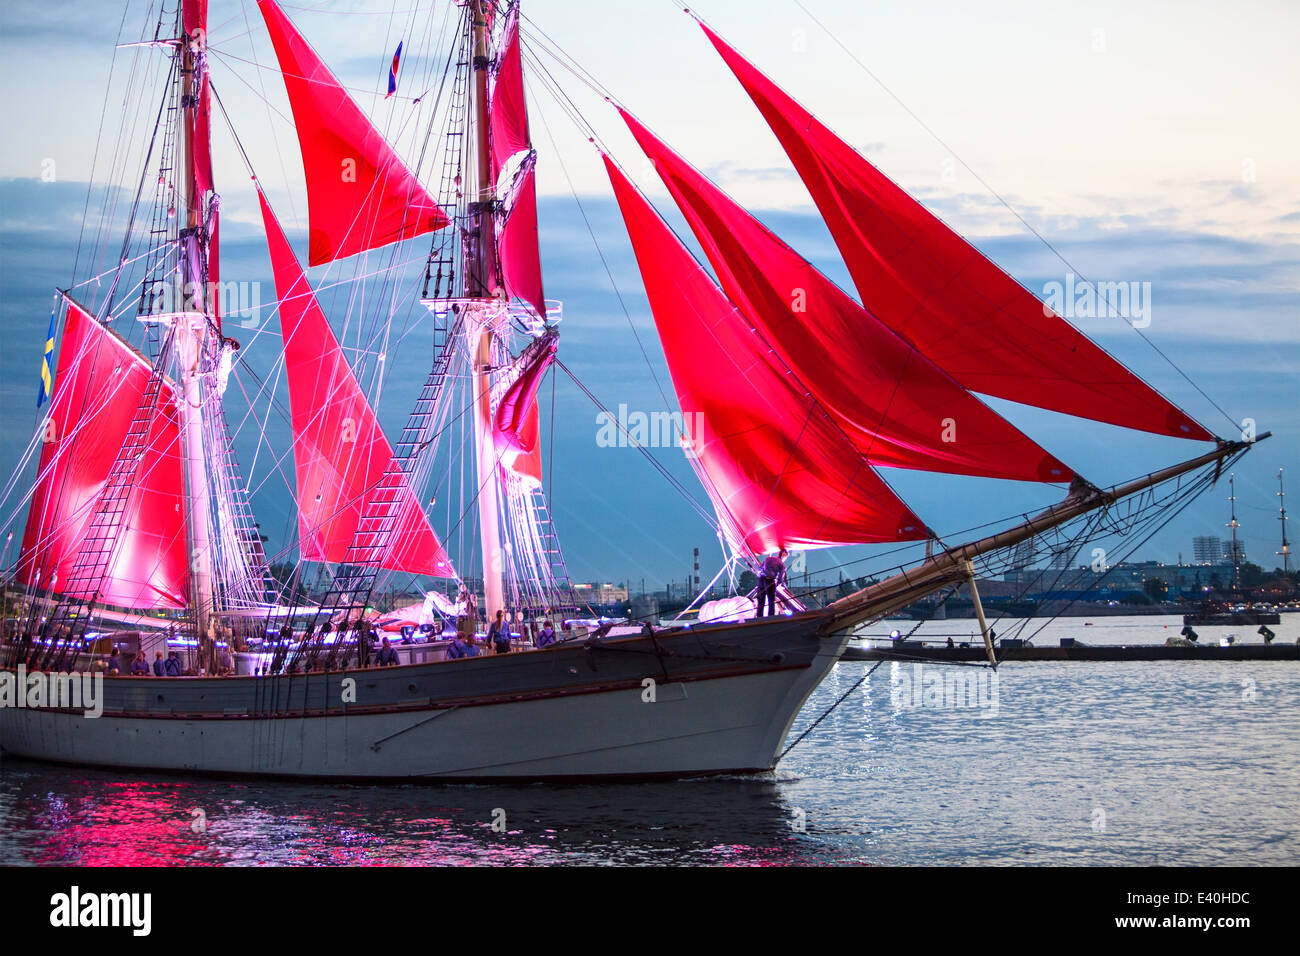 Scarlet Sails show during the White Nights Festival, St. Petersburg, Russia. Vessel with red sails on Neva river - Stock Image